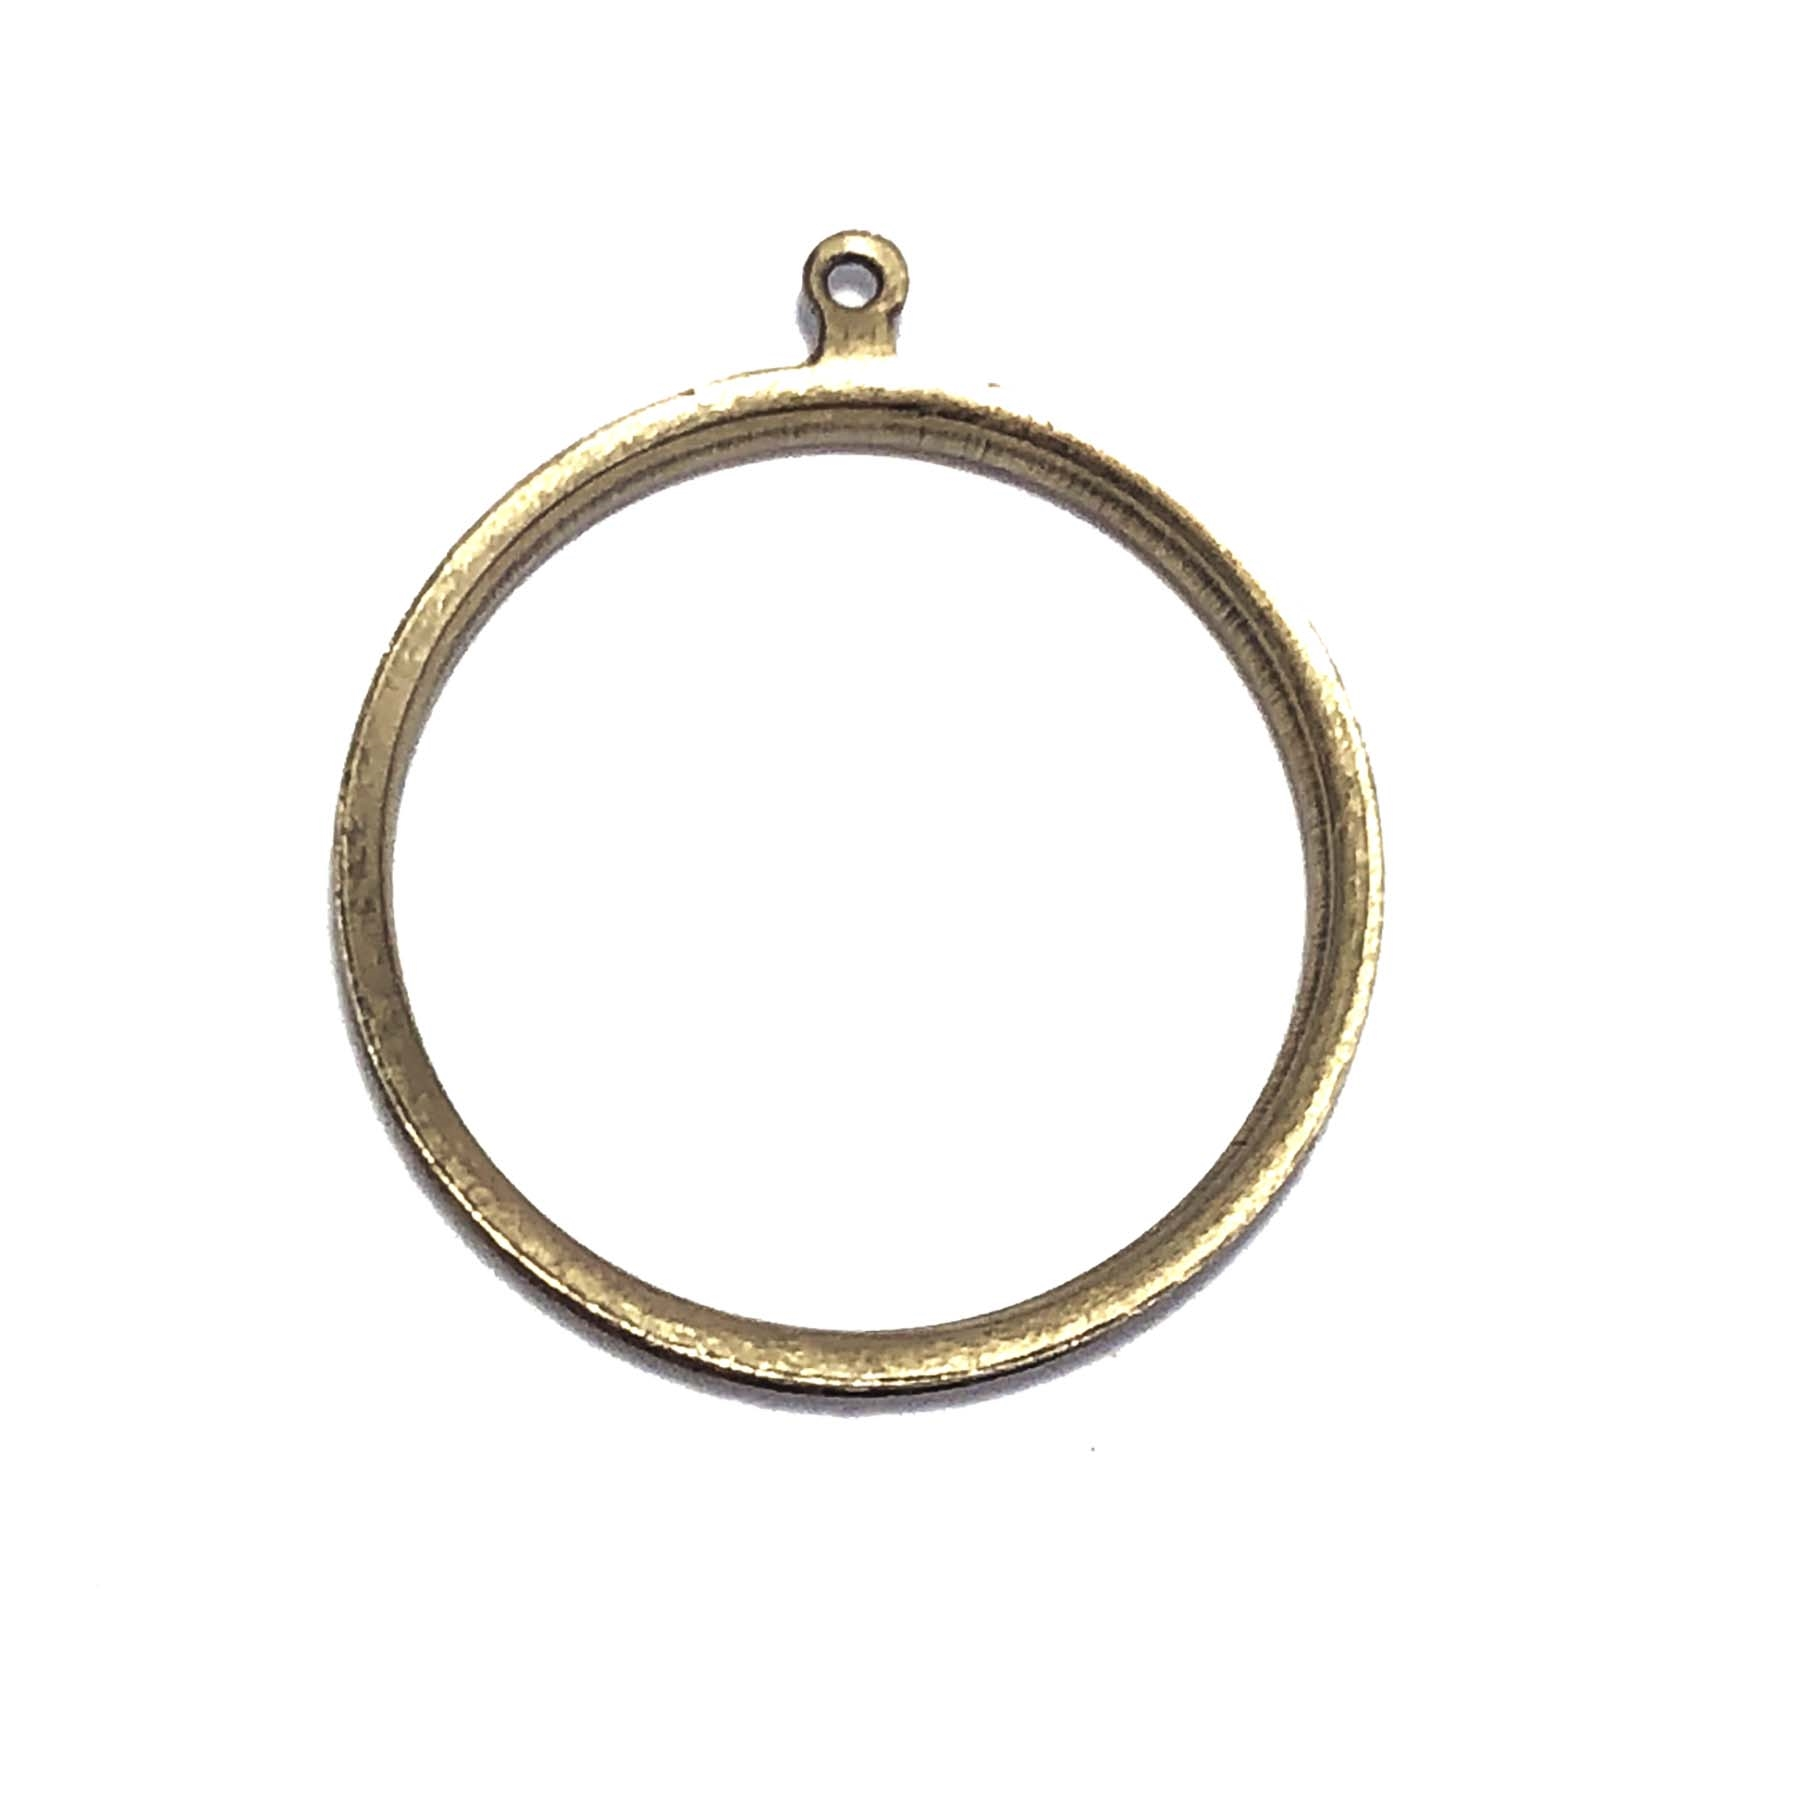 round open back bezel, round open back bezel with edge channel, pendant, backless pendant, vintage supplies, jewelry supplies, brass jewelry parts, jewelry making, B'sue Boutiques, nickel free, brass ox, antique brass, 32x28mm, bezel, 0755